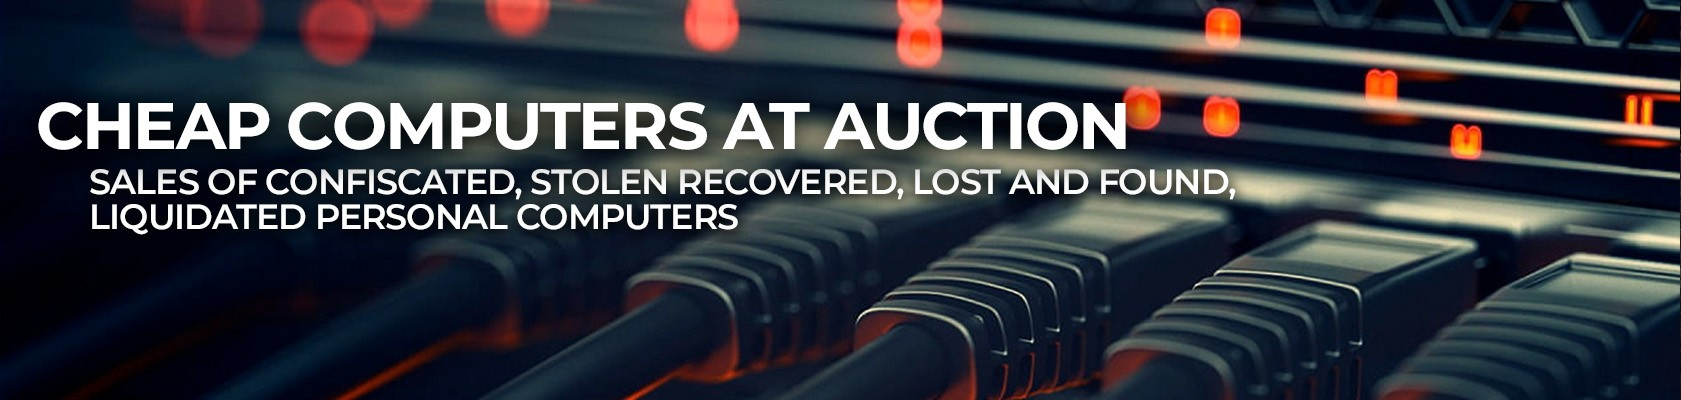 computer auctions